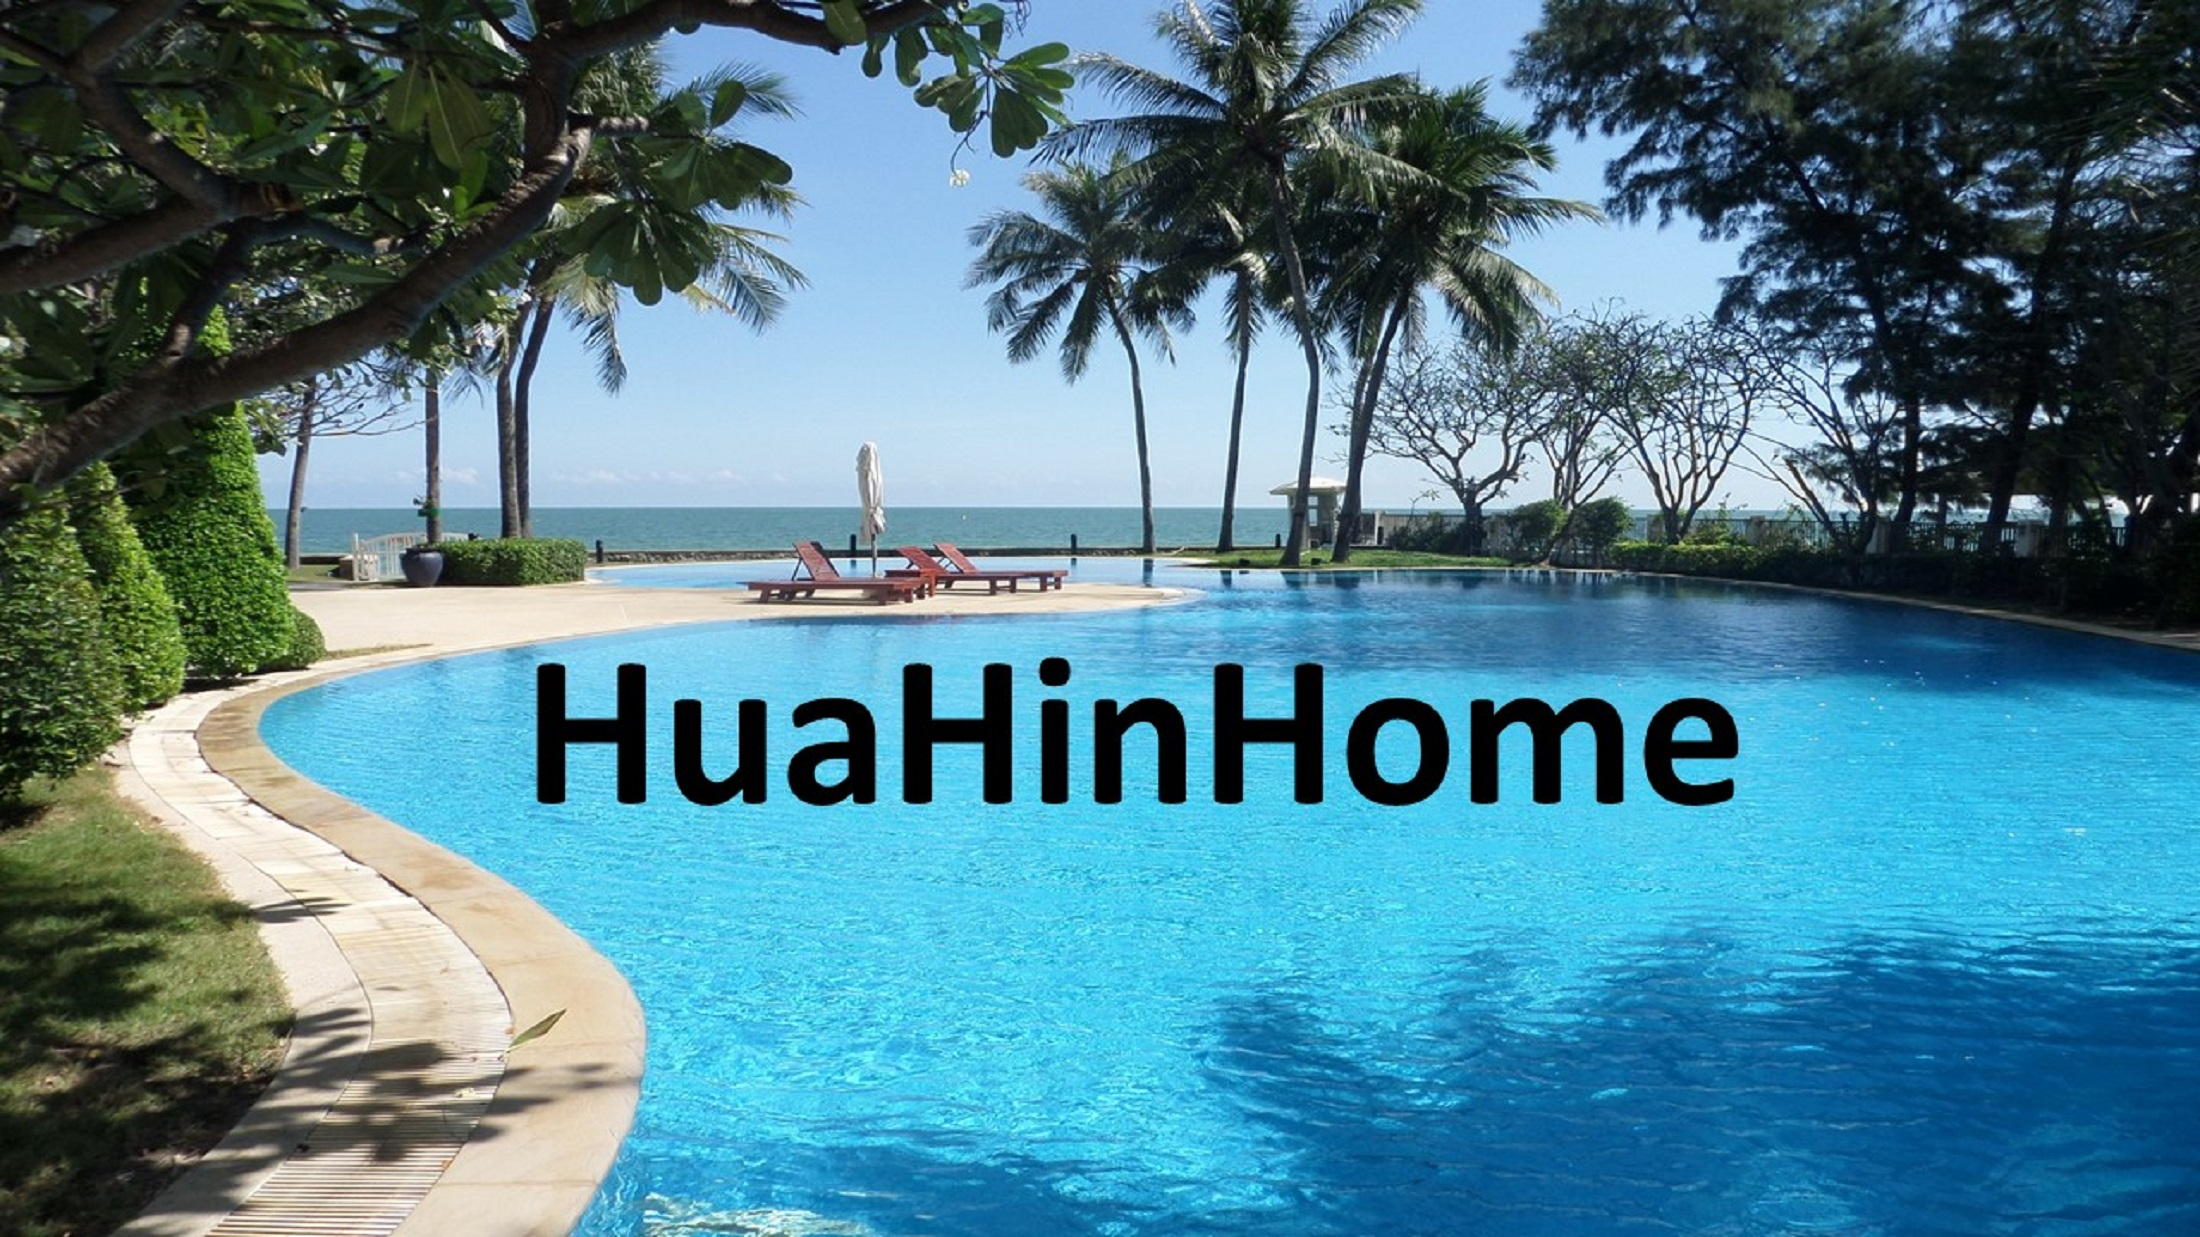 Huahinhome | Huahinhome   Page with right sidebar